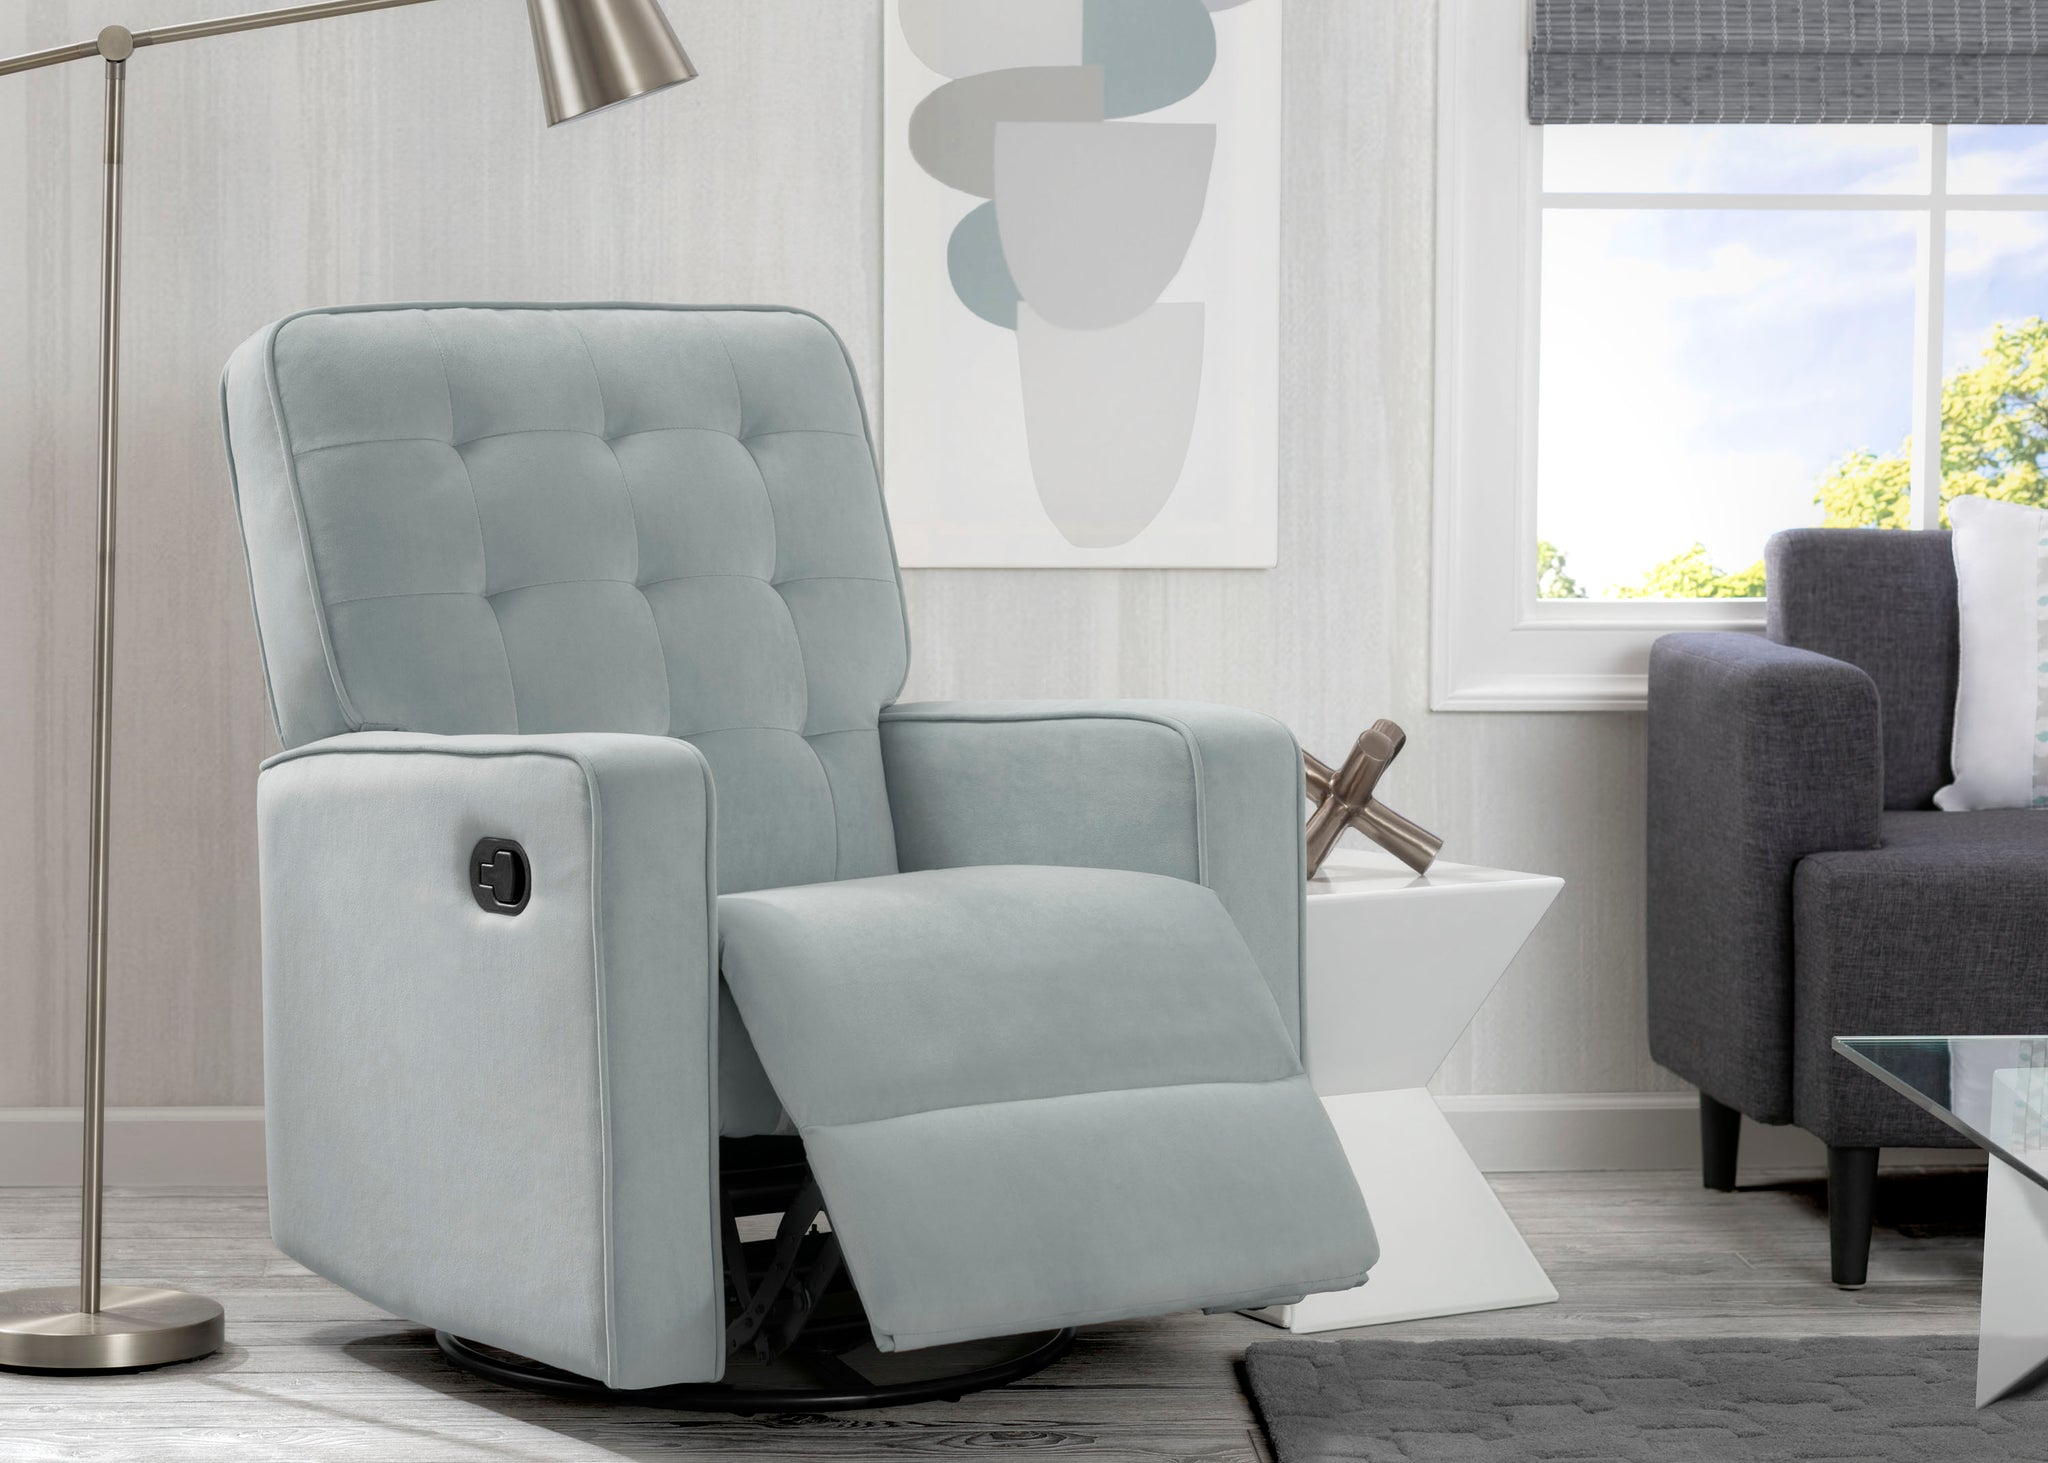 Delta Home Mist (934) Grant Glider Swivel Recliner, Room Reclined View